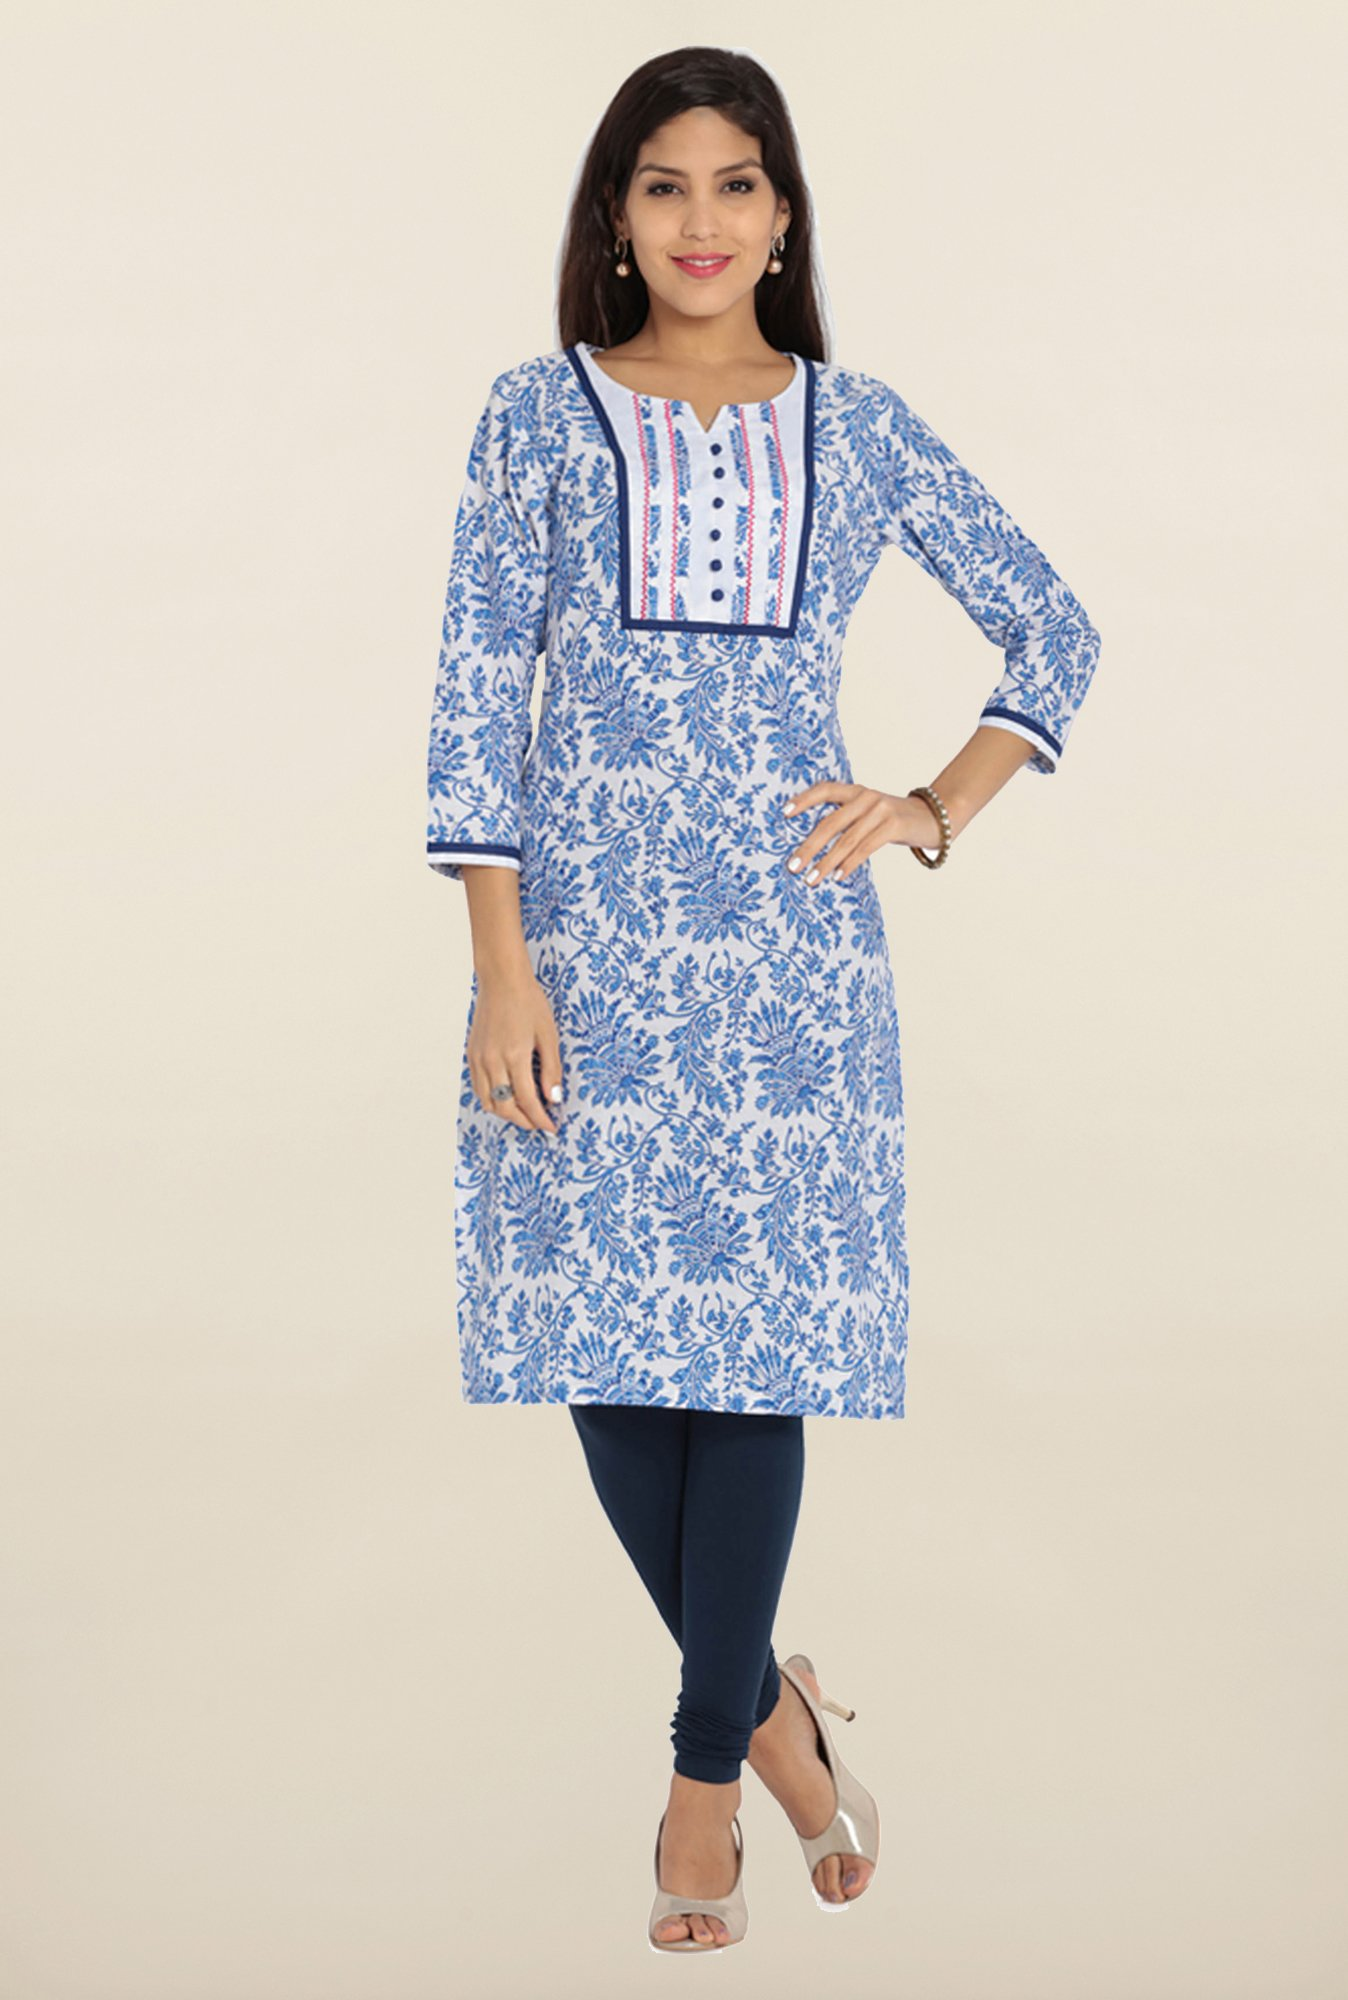 Soch Royal Blue & White Floral Printed Kurta